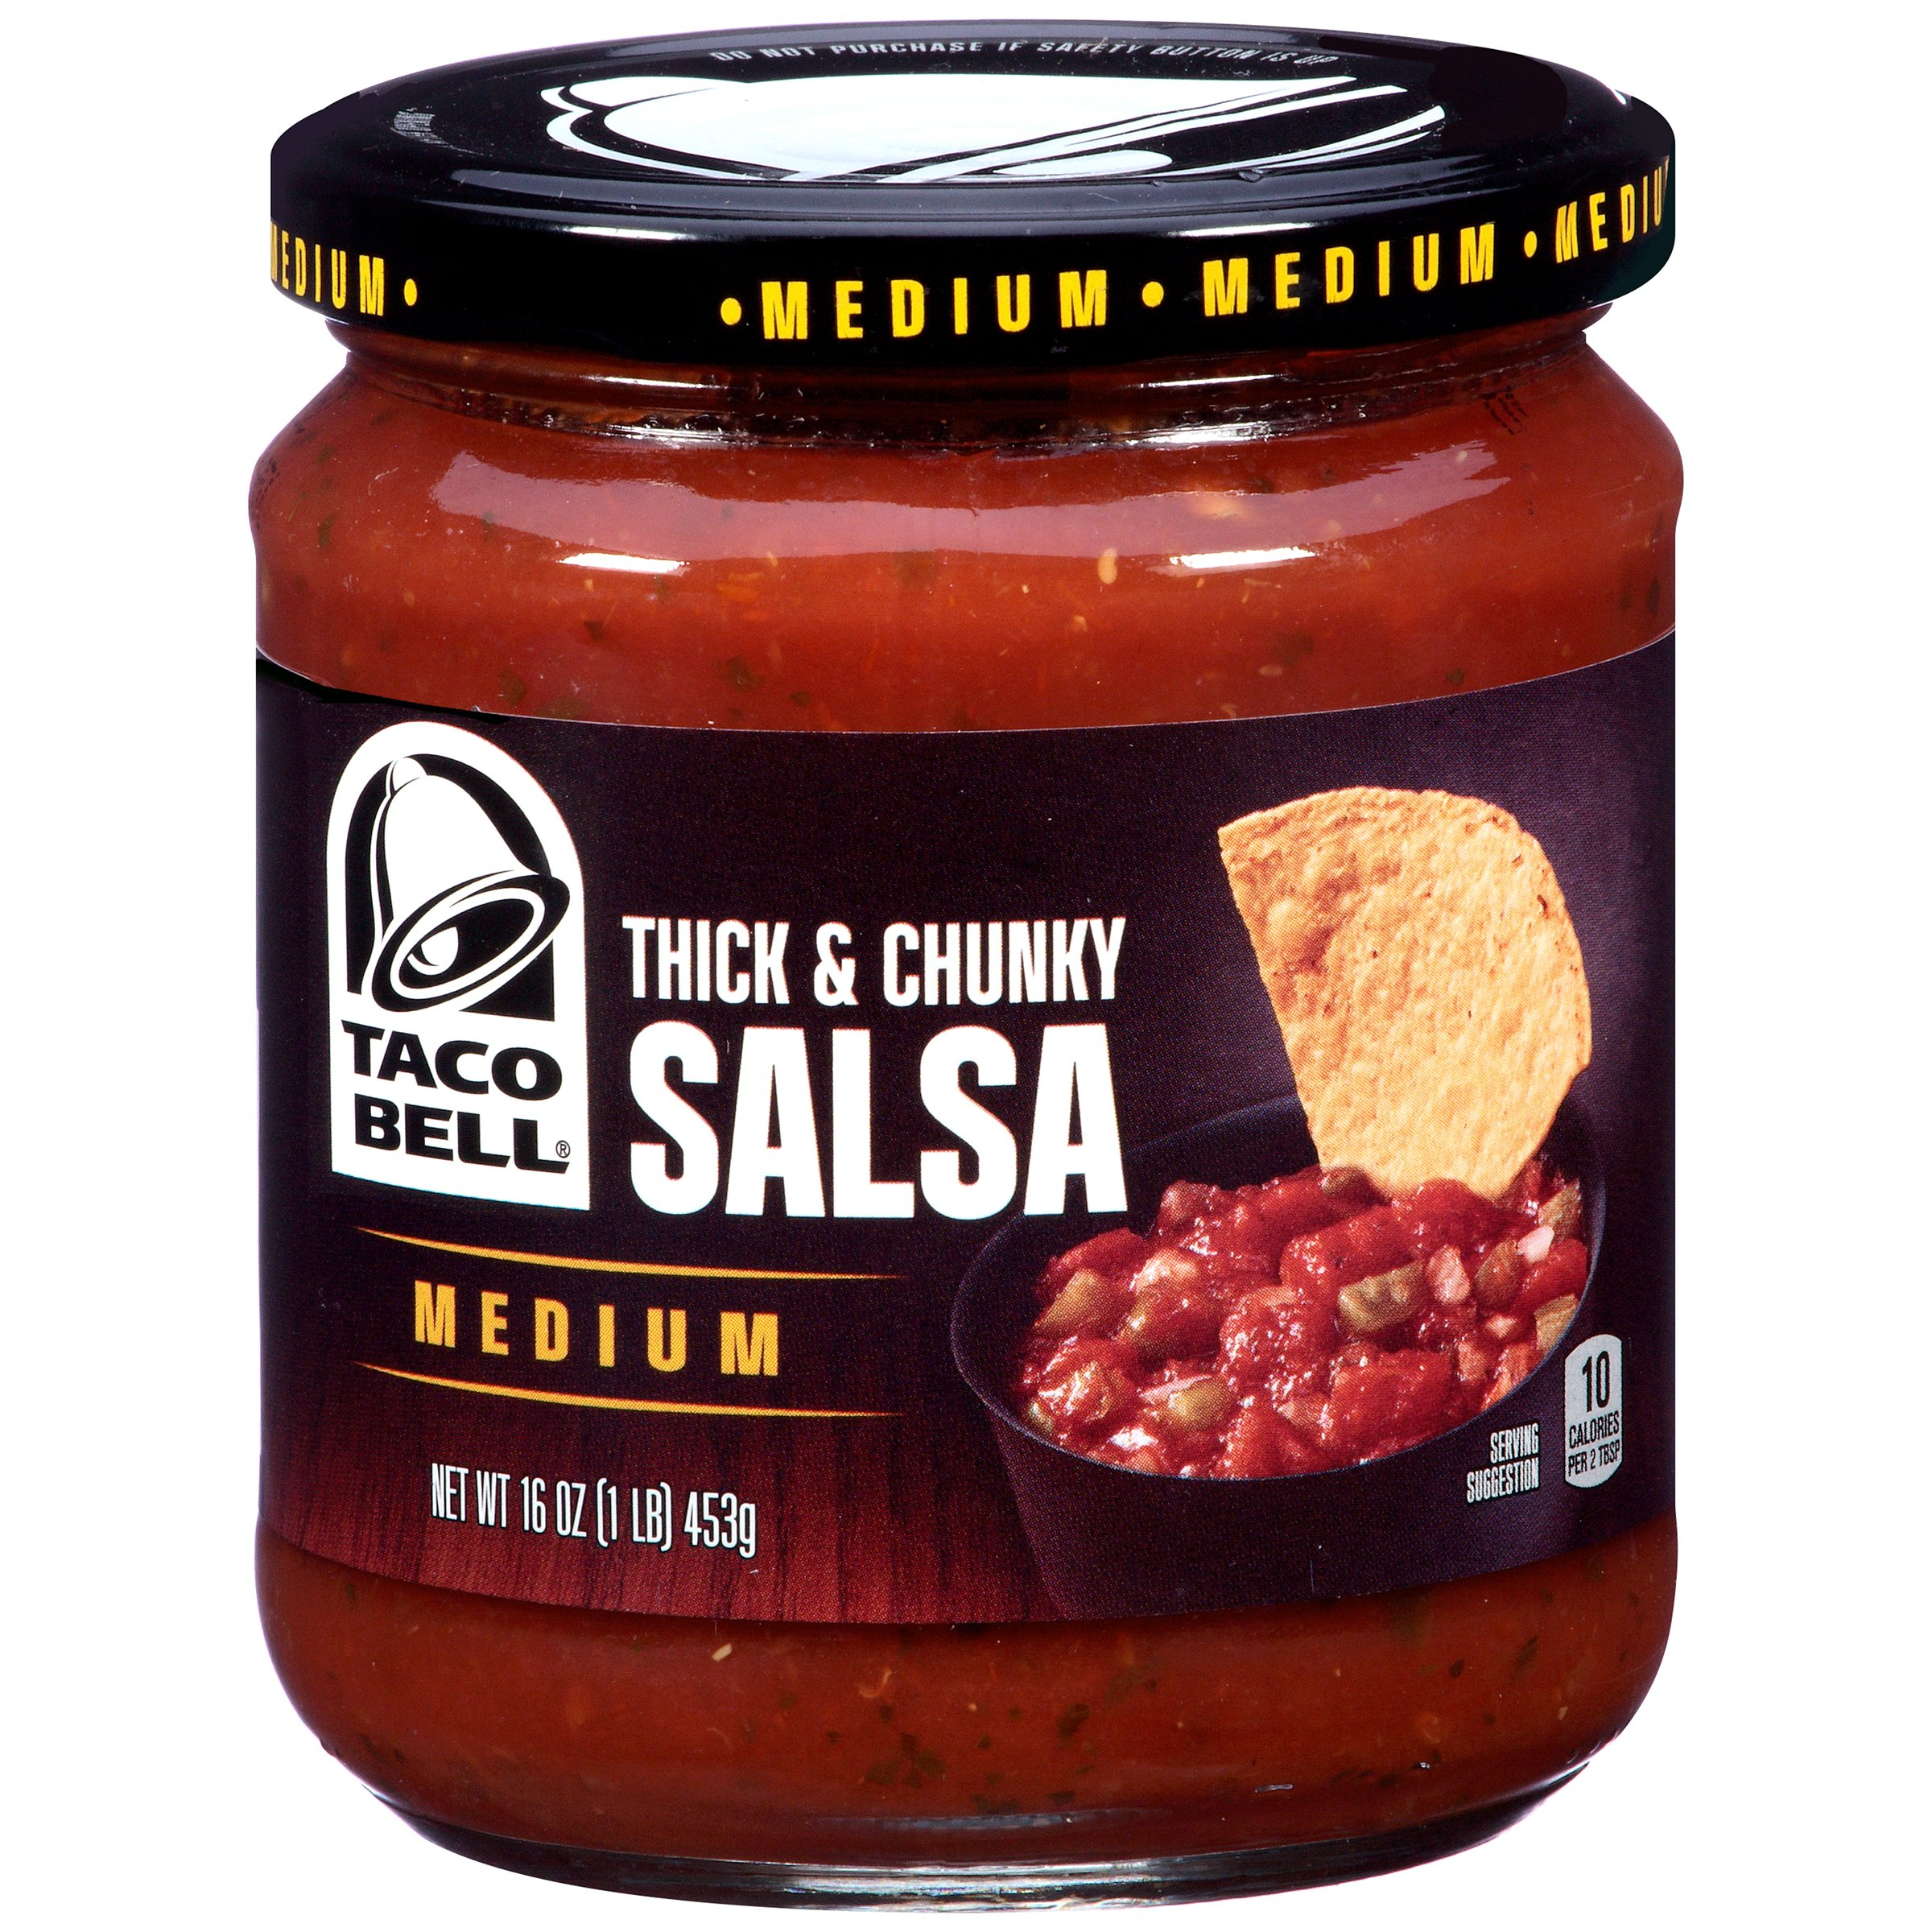 Taco Bell Medium Thick & Chunky Salsa 16 oz. Jar